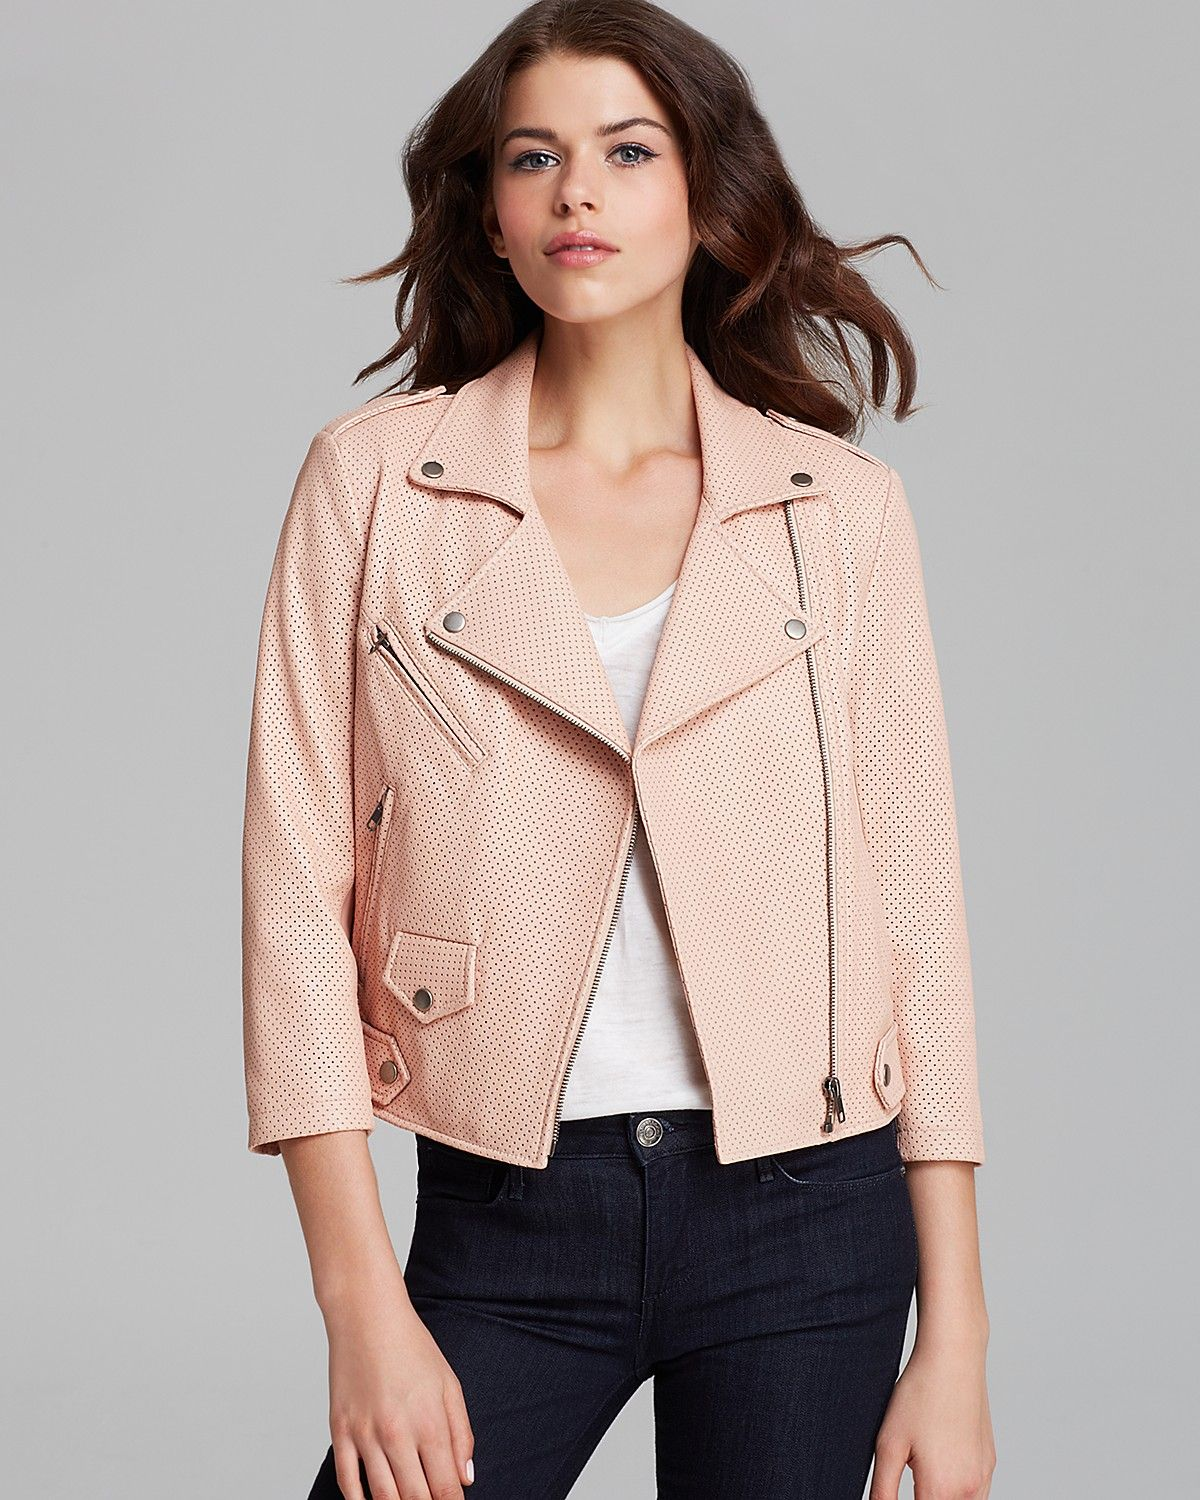 When a black leather jacket just won't do. Rebecca Minkoff Jacket | Chasing Life